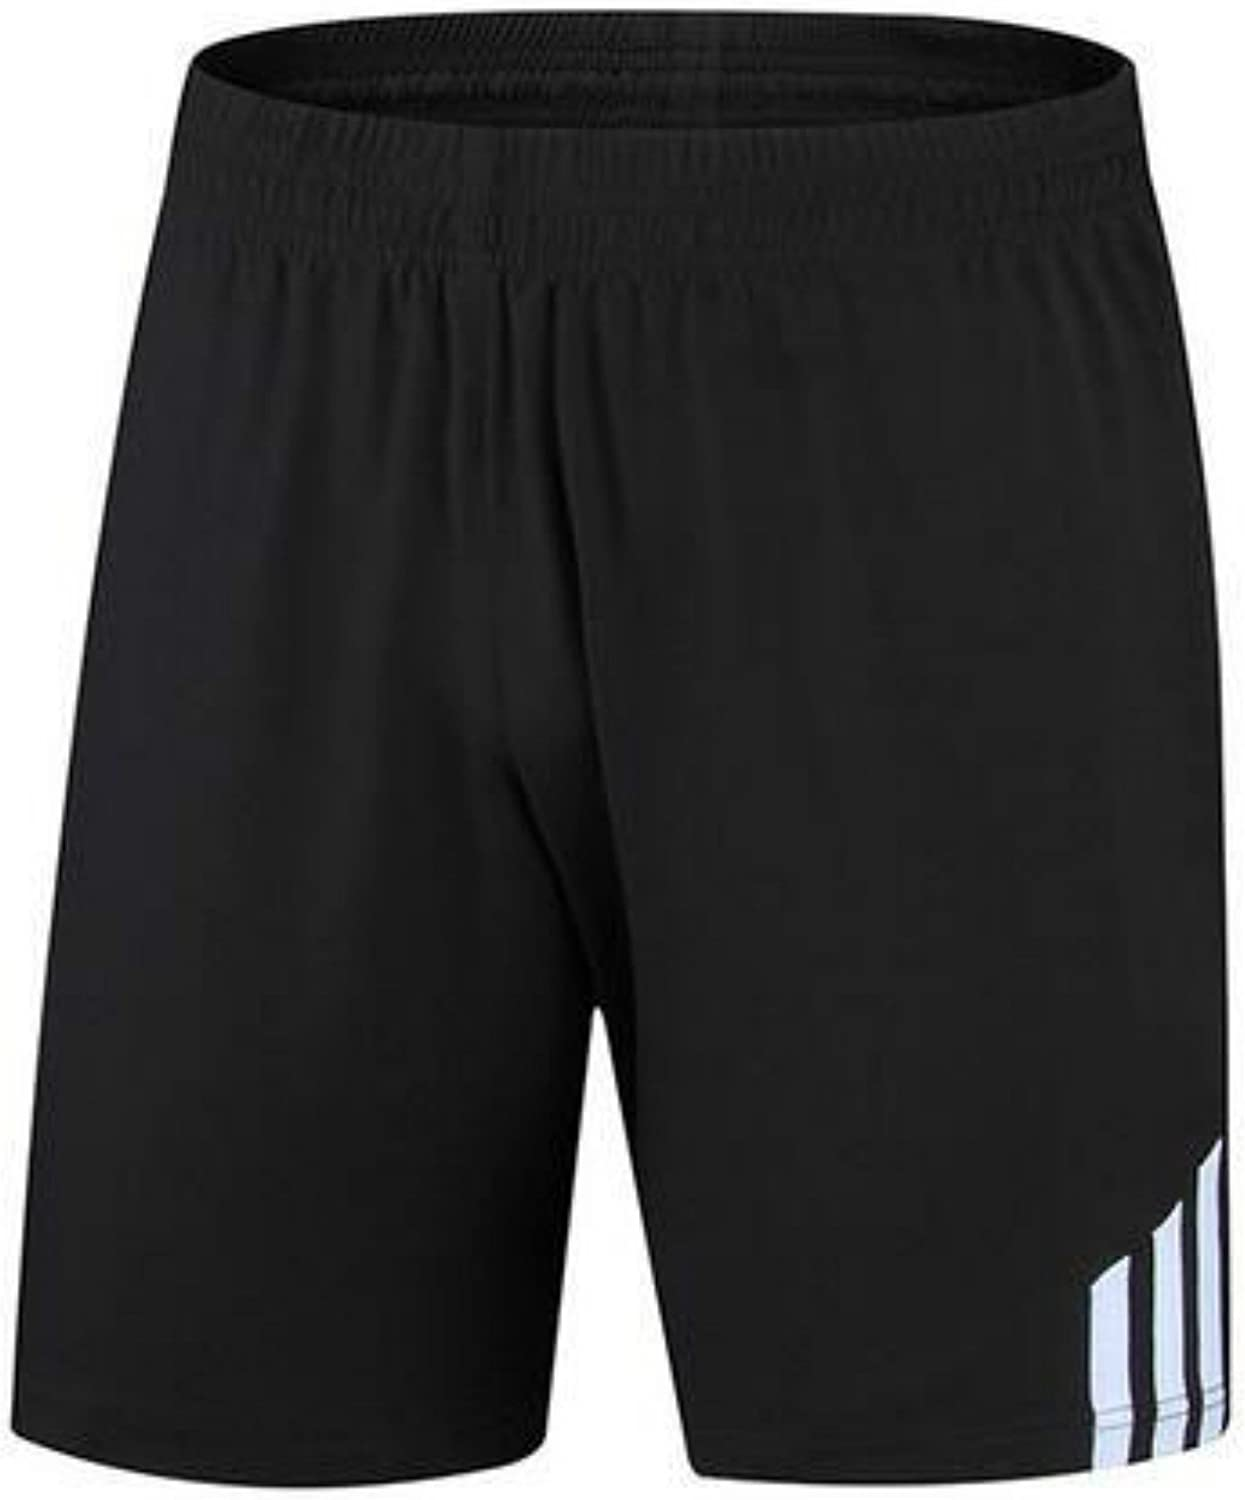 Colygamala Mens Casual Training//Basketball Shorts with Pockets 3Color